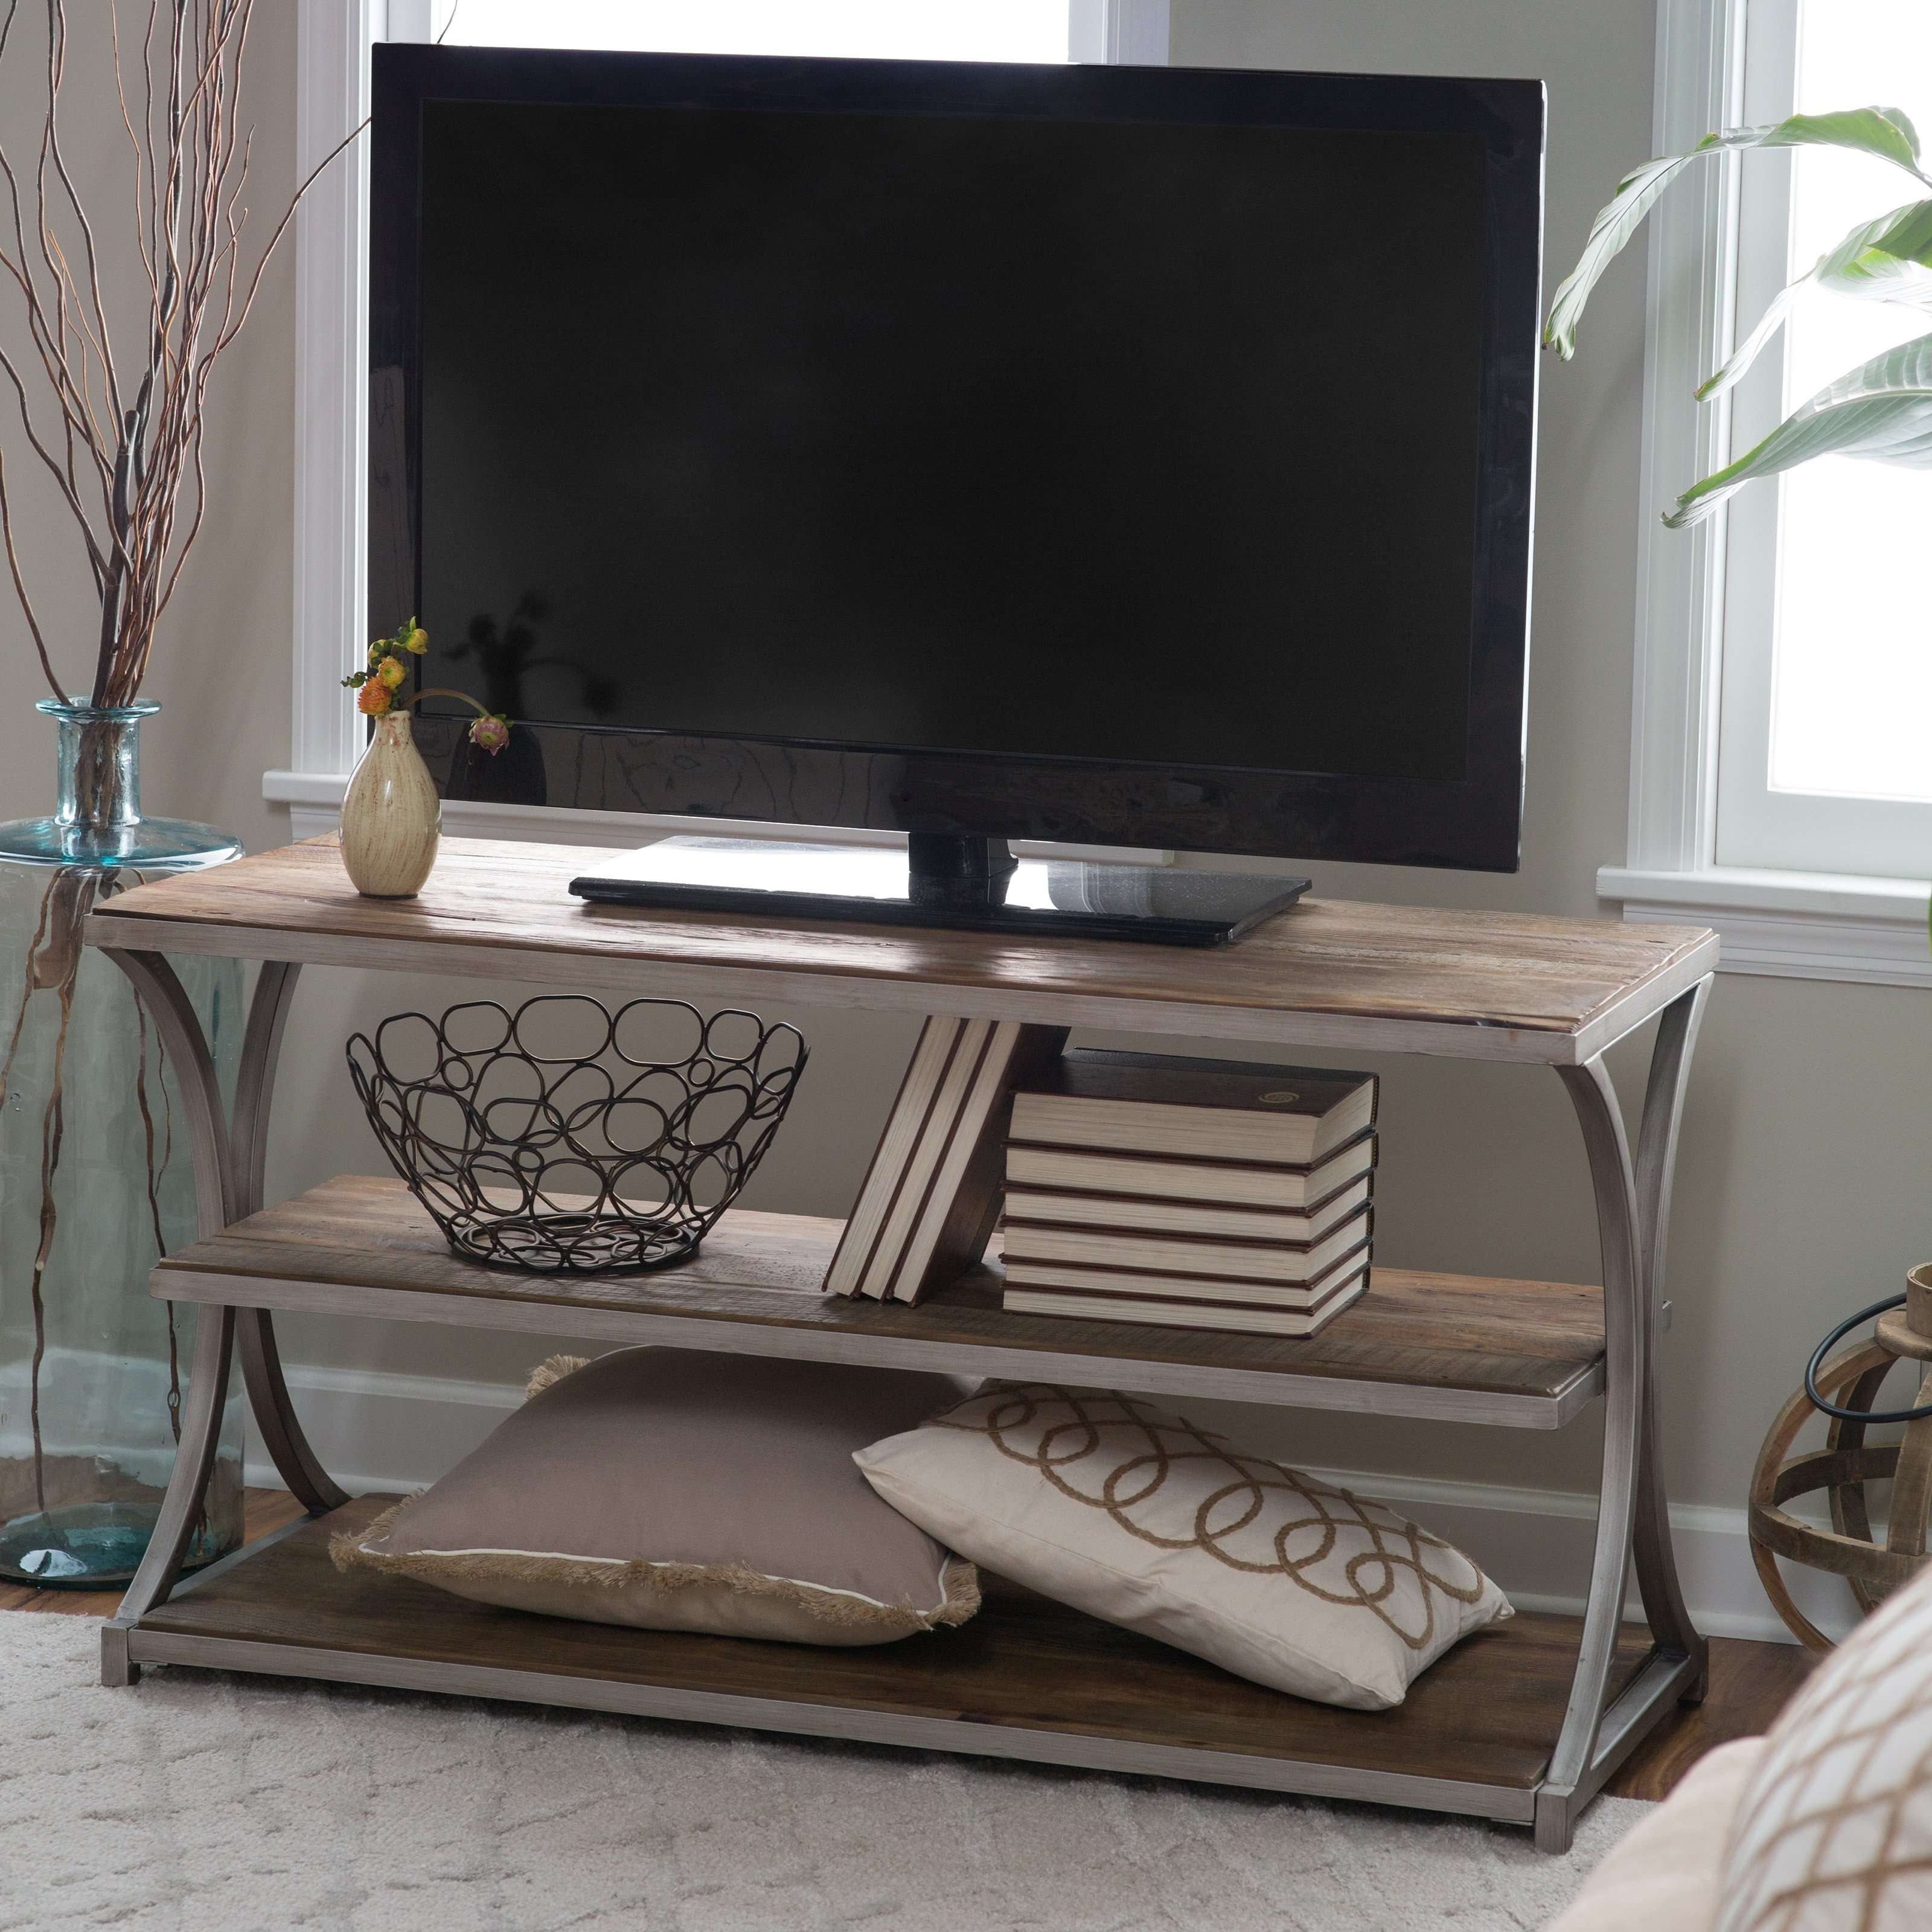 Belham Living Edison Reclaimed Wood Tv Stand | Hayneedle In Metal And Wood Tv Stands (View 2 of 15)